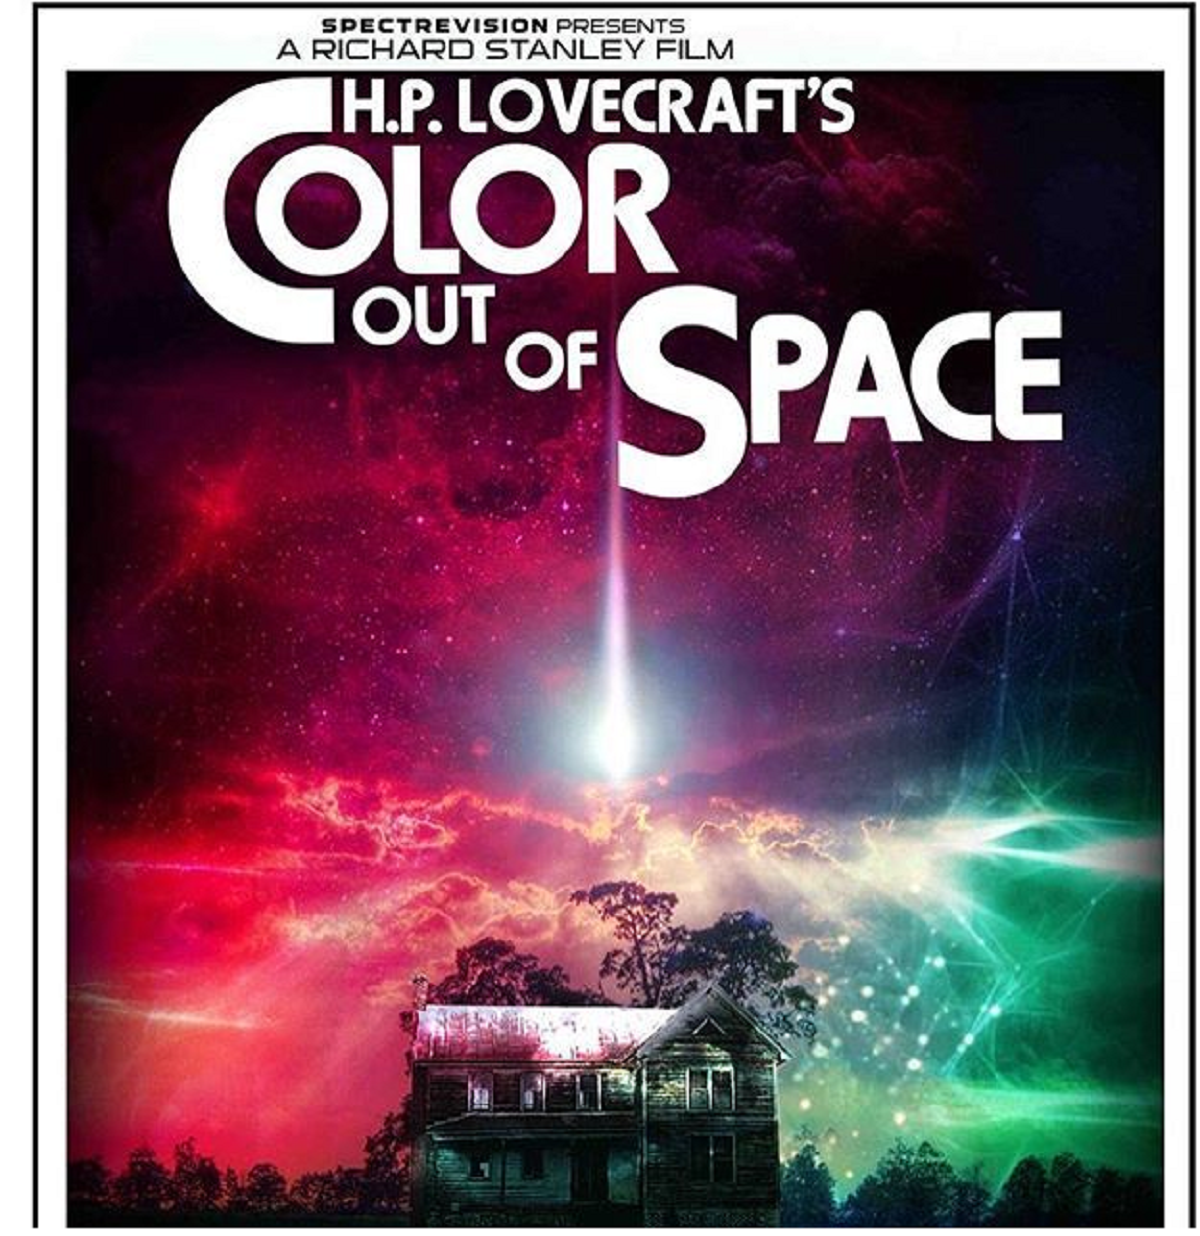 Poster for The Color Out of Space, starring Nicolas Cage, directed by Richard Stanley, SpectreVision